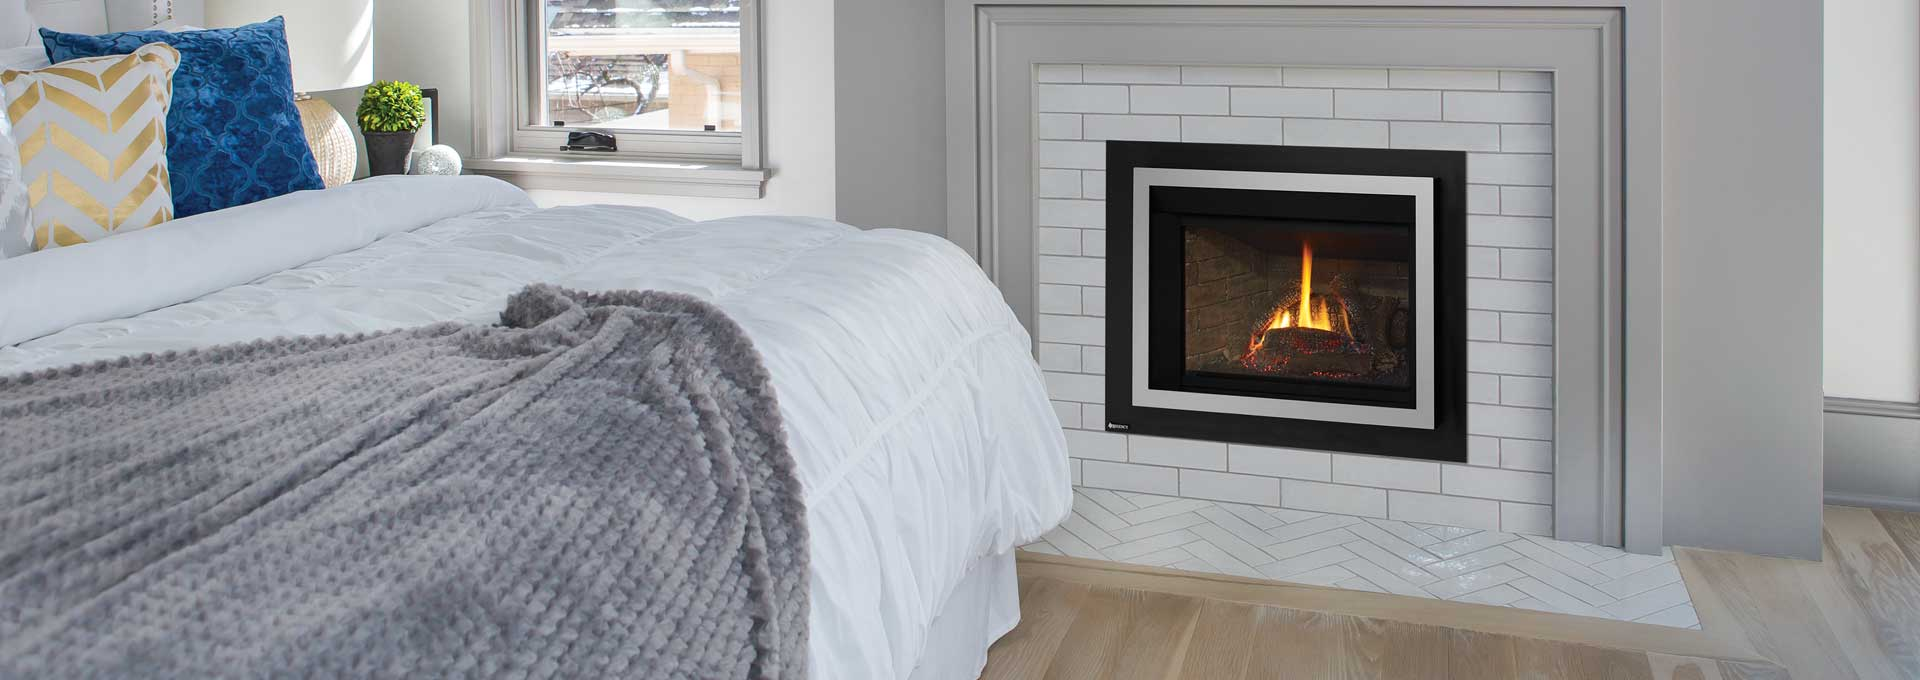 The 11 Best Gas Fireplace Insert Trends of 2020